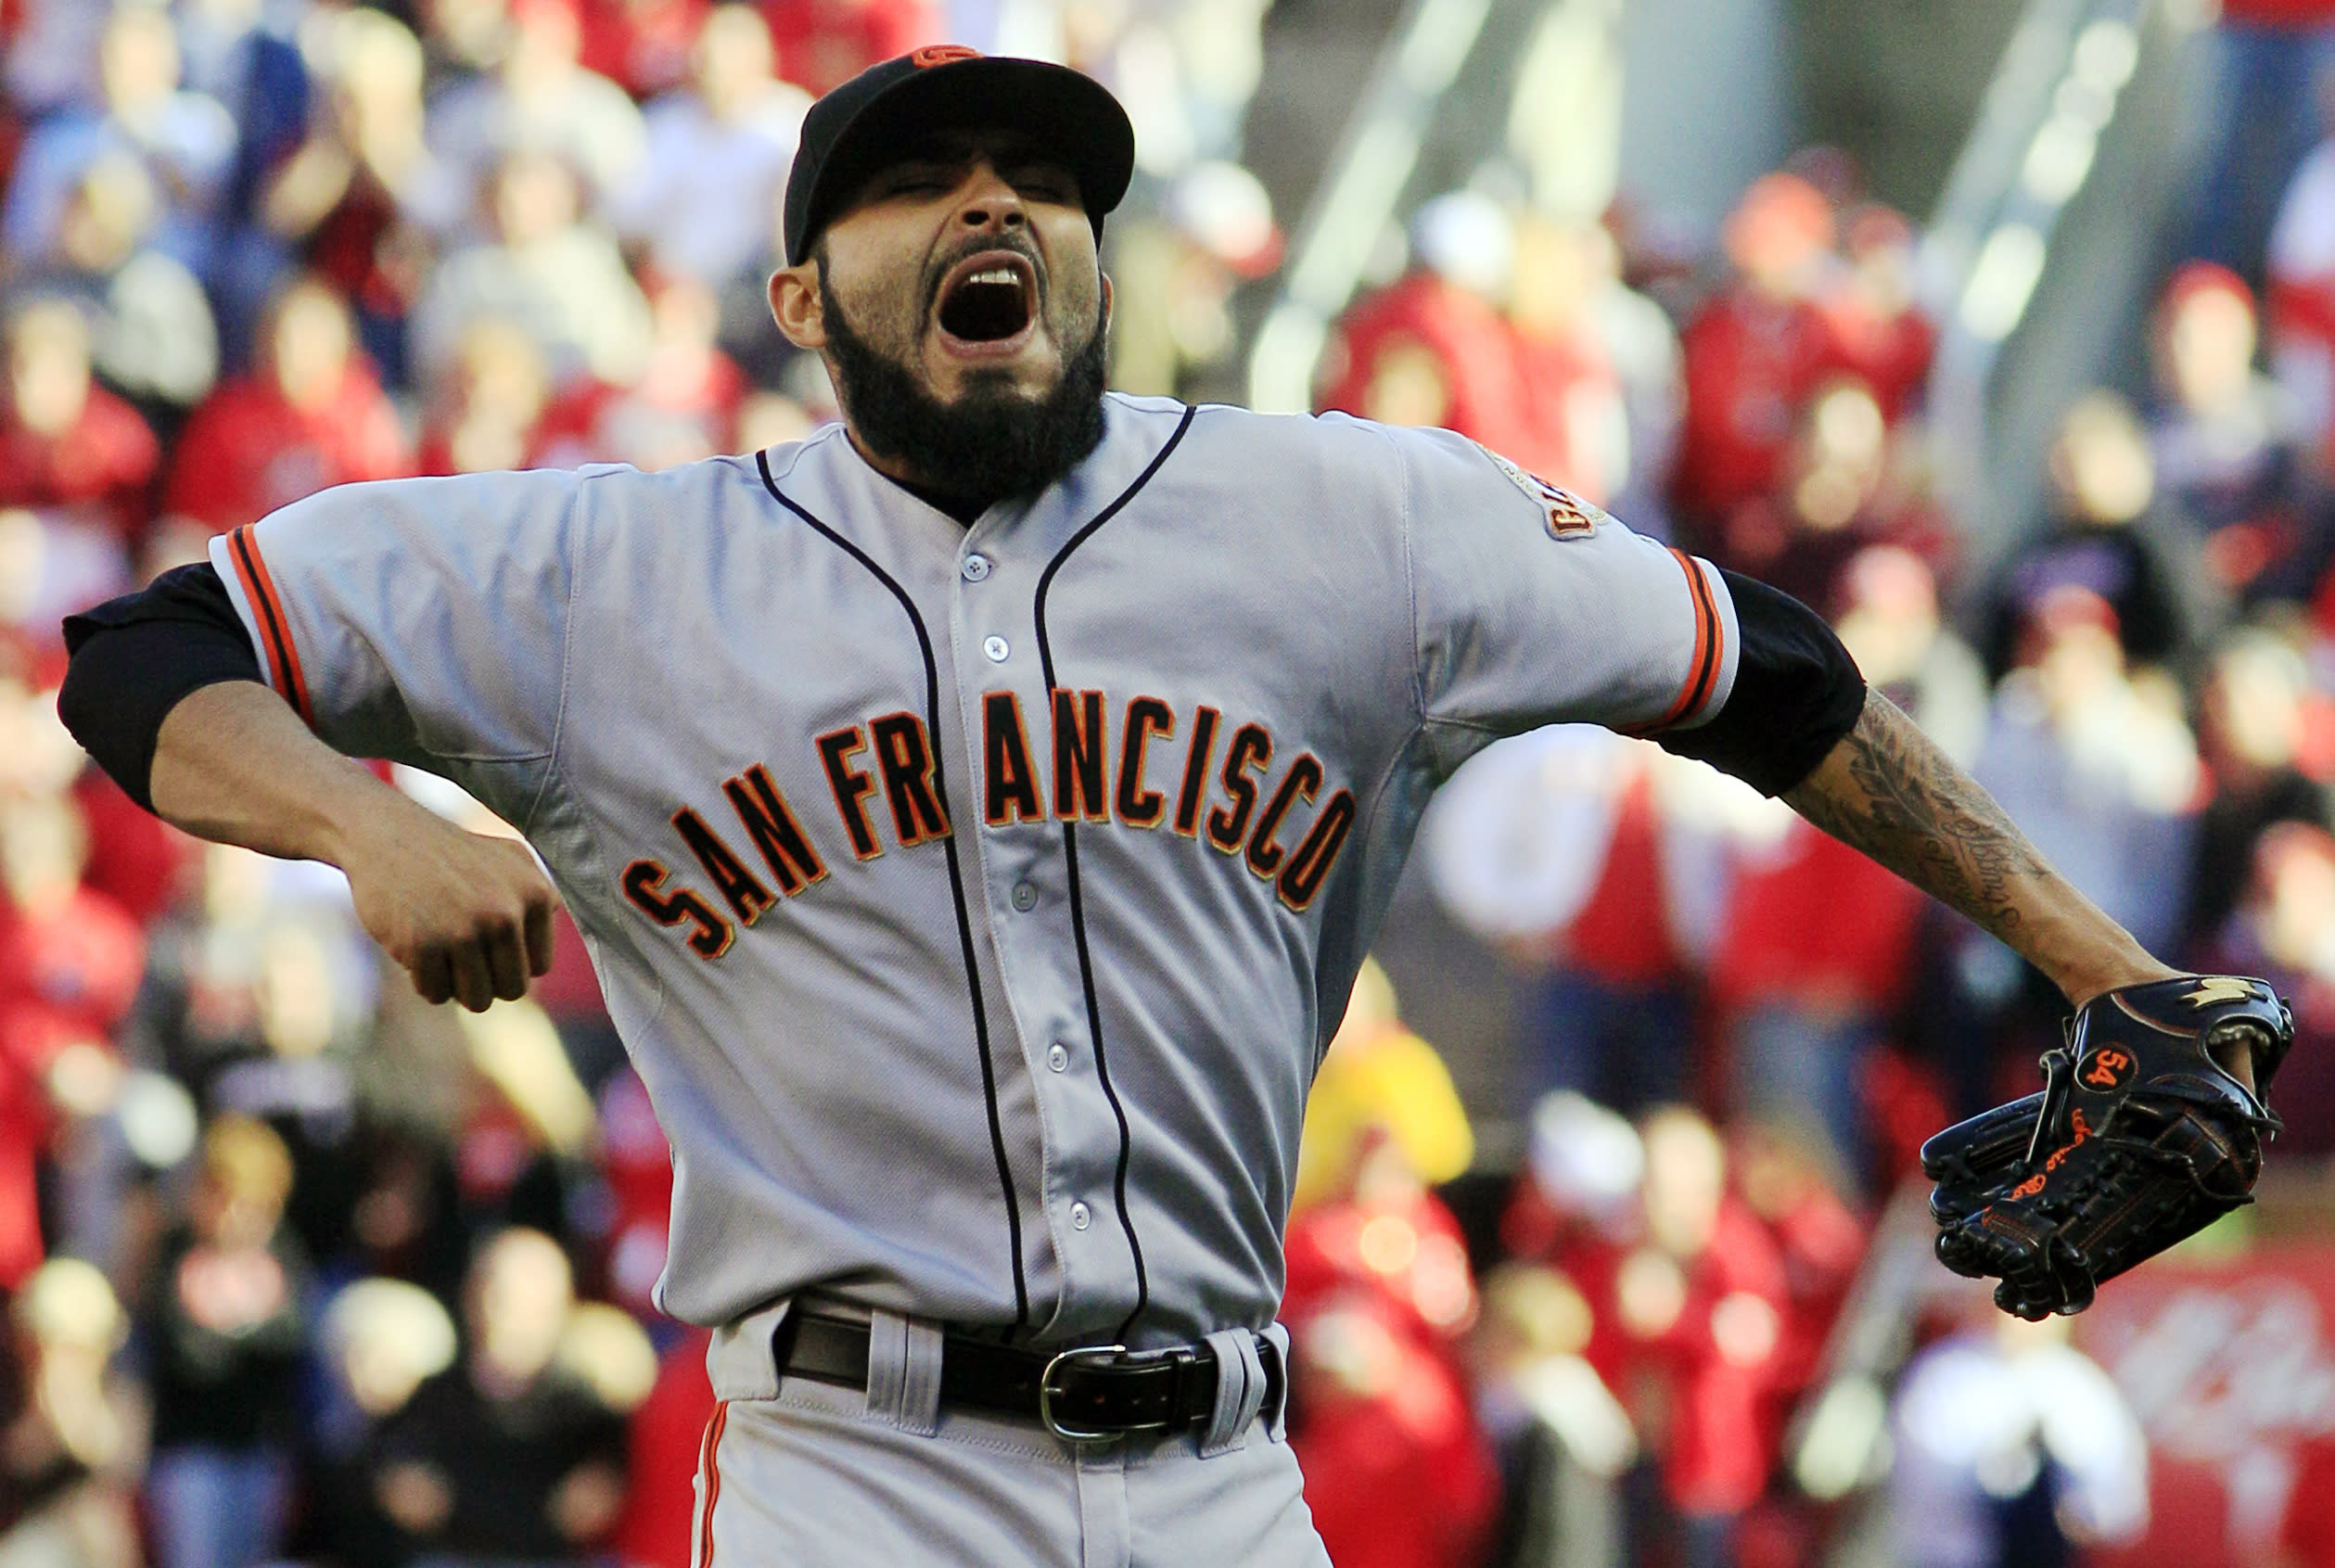 San Francisco Giants relief pitcher Sergio Romo celebrates after the Giants defeated the Cincinnati Reds 6-4 in Game 5 of the National League division baseball series, Thursday, Oct. 11, 2012, in Cincinnati. The Giants won the final three games, all in Cincinnati, and advanced to the NL championship series. (AP Photo/Al Behrman)